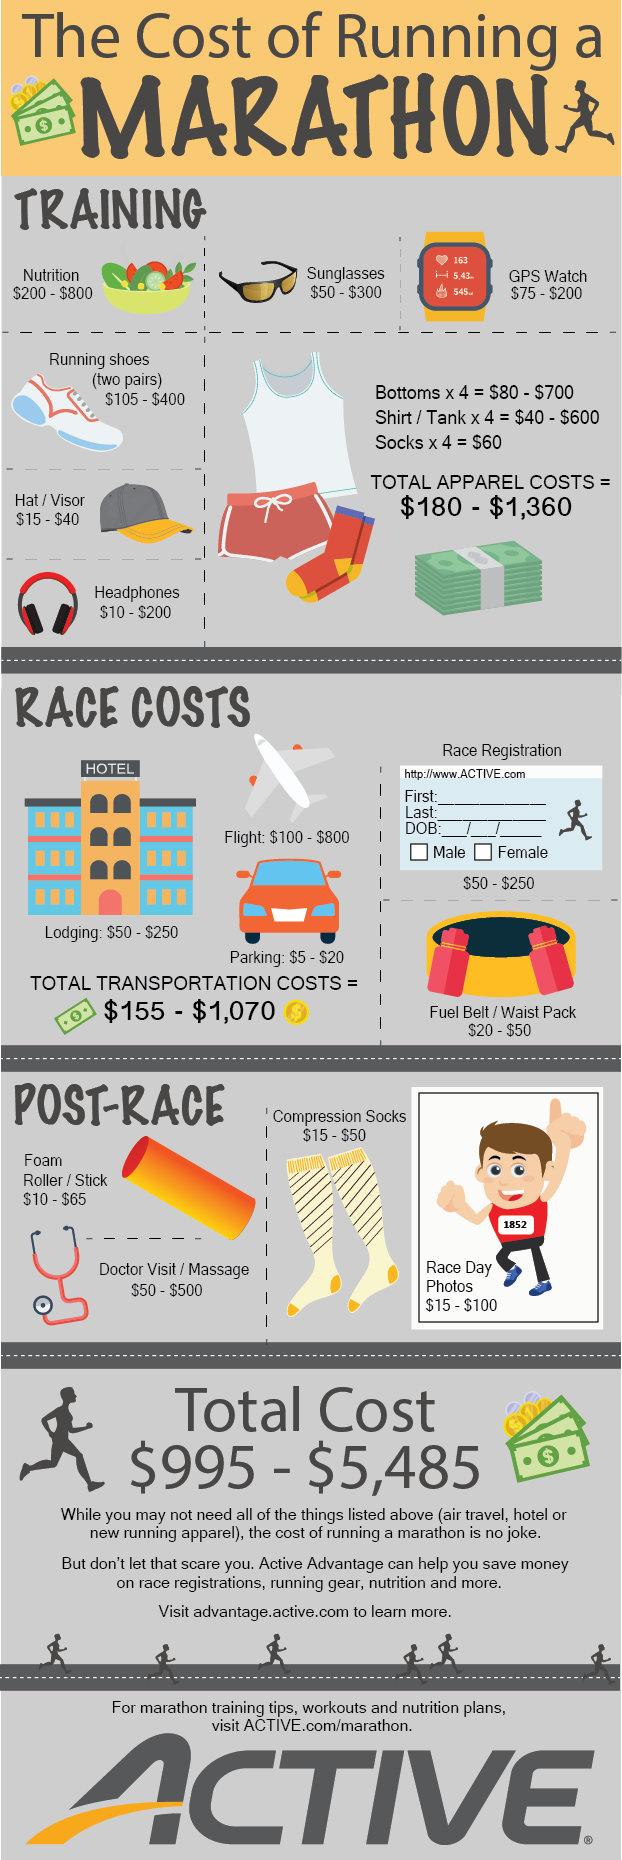 The Cost of Running a Marathon